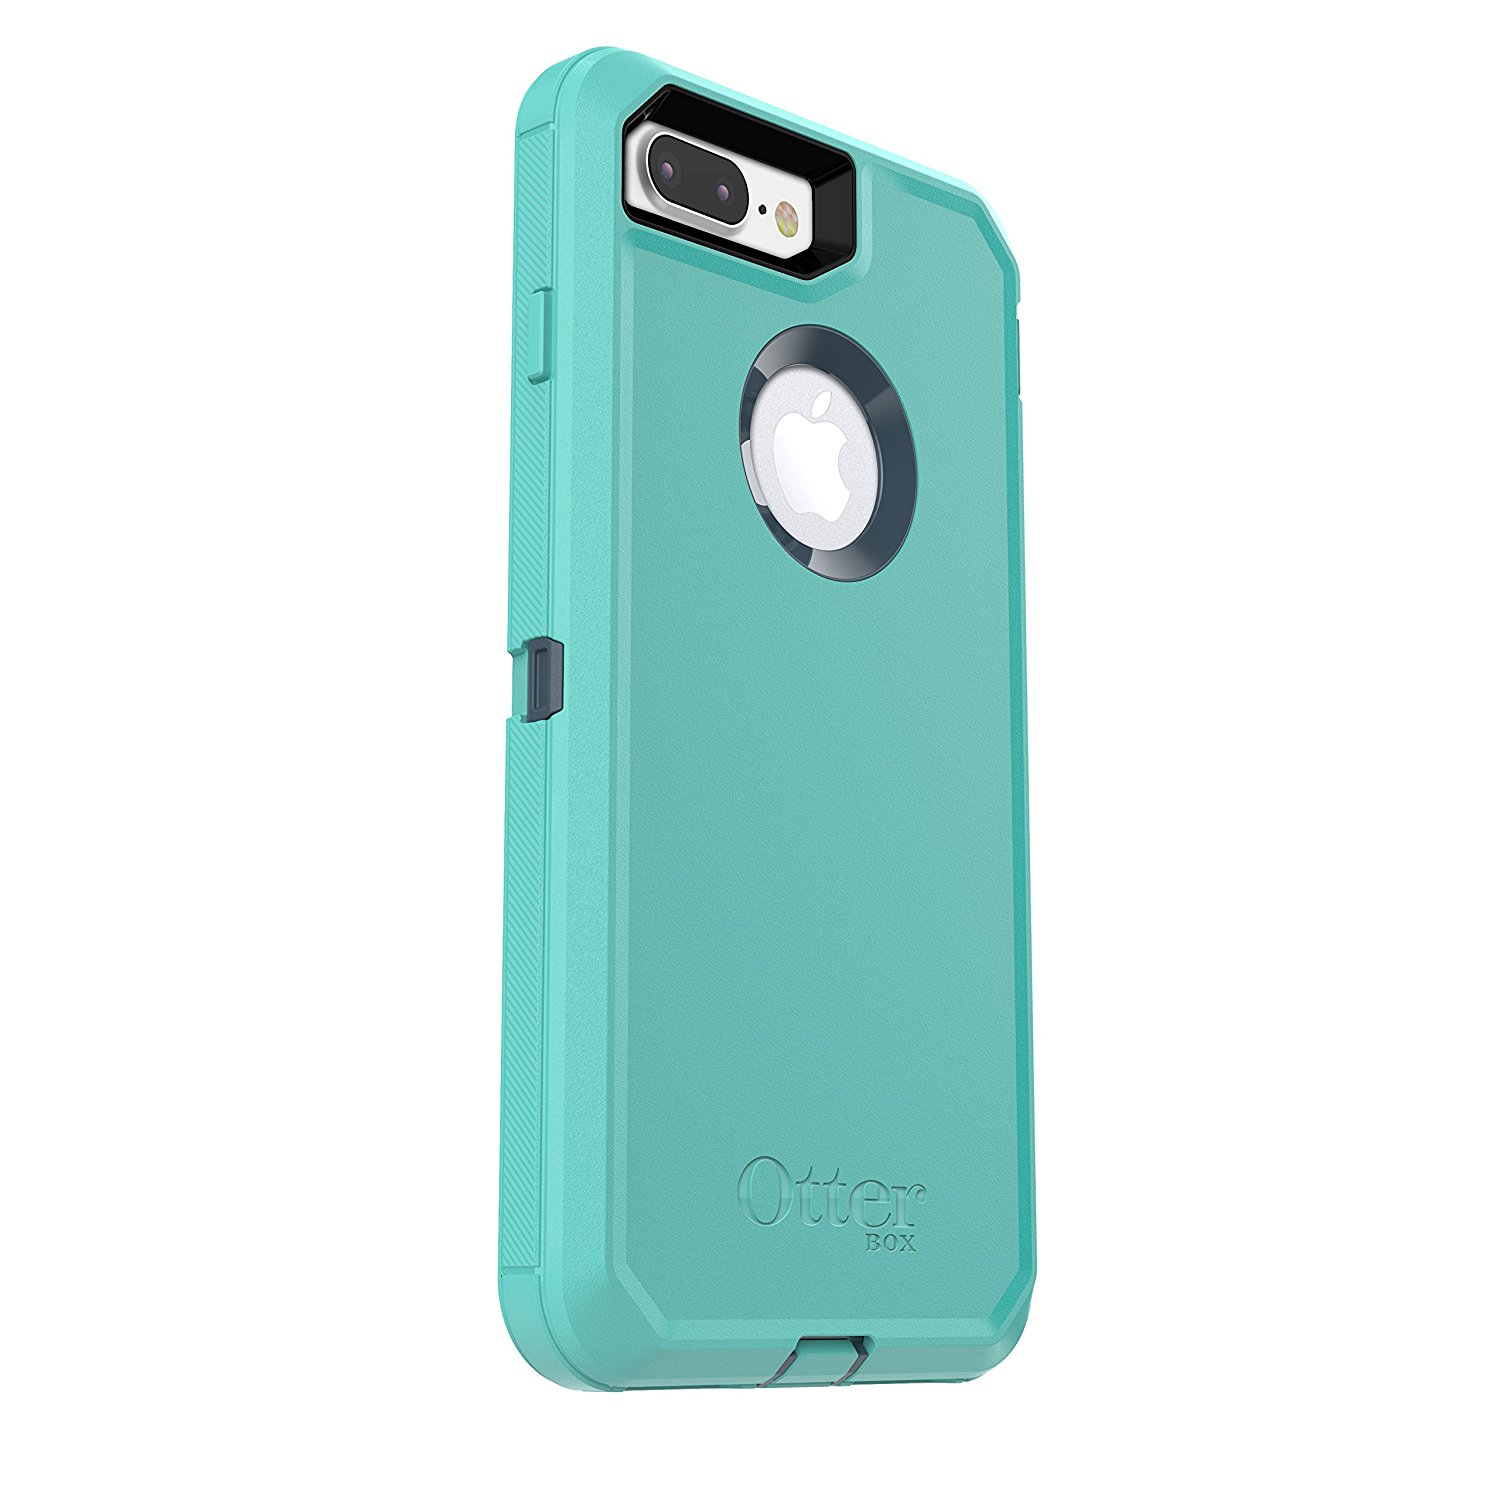 Otterbox-Defender-Series-Case-for-iphone-7-plus